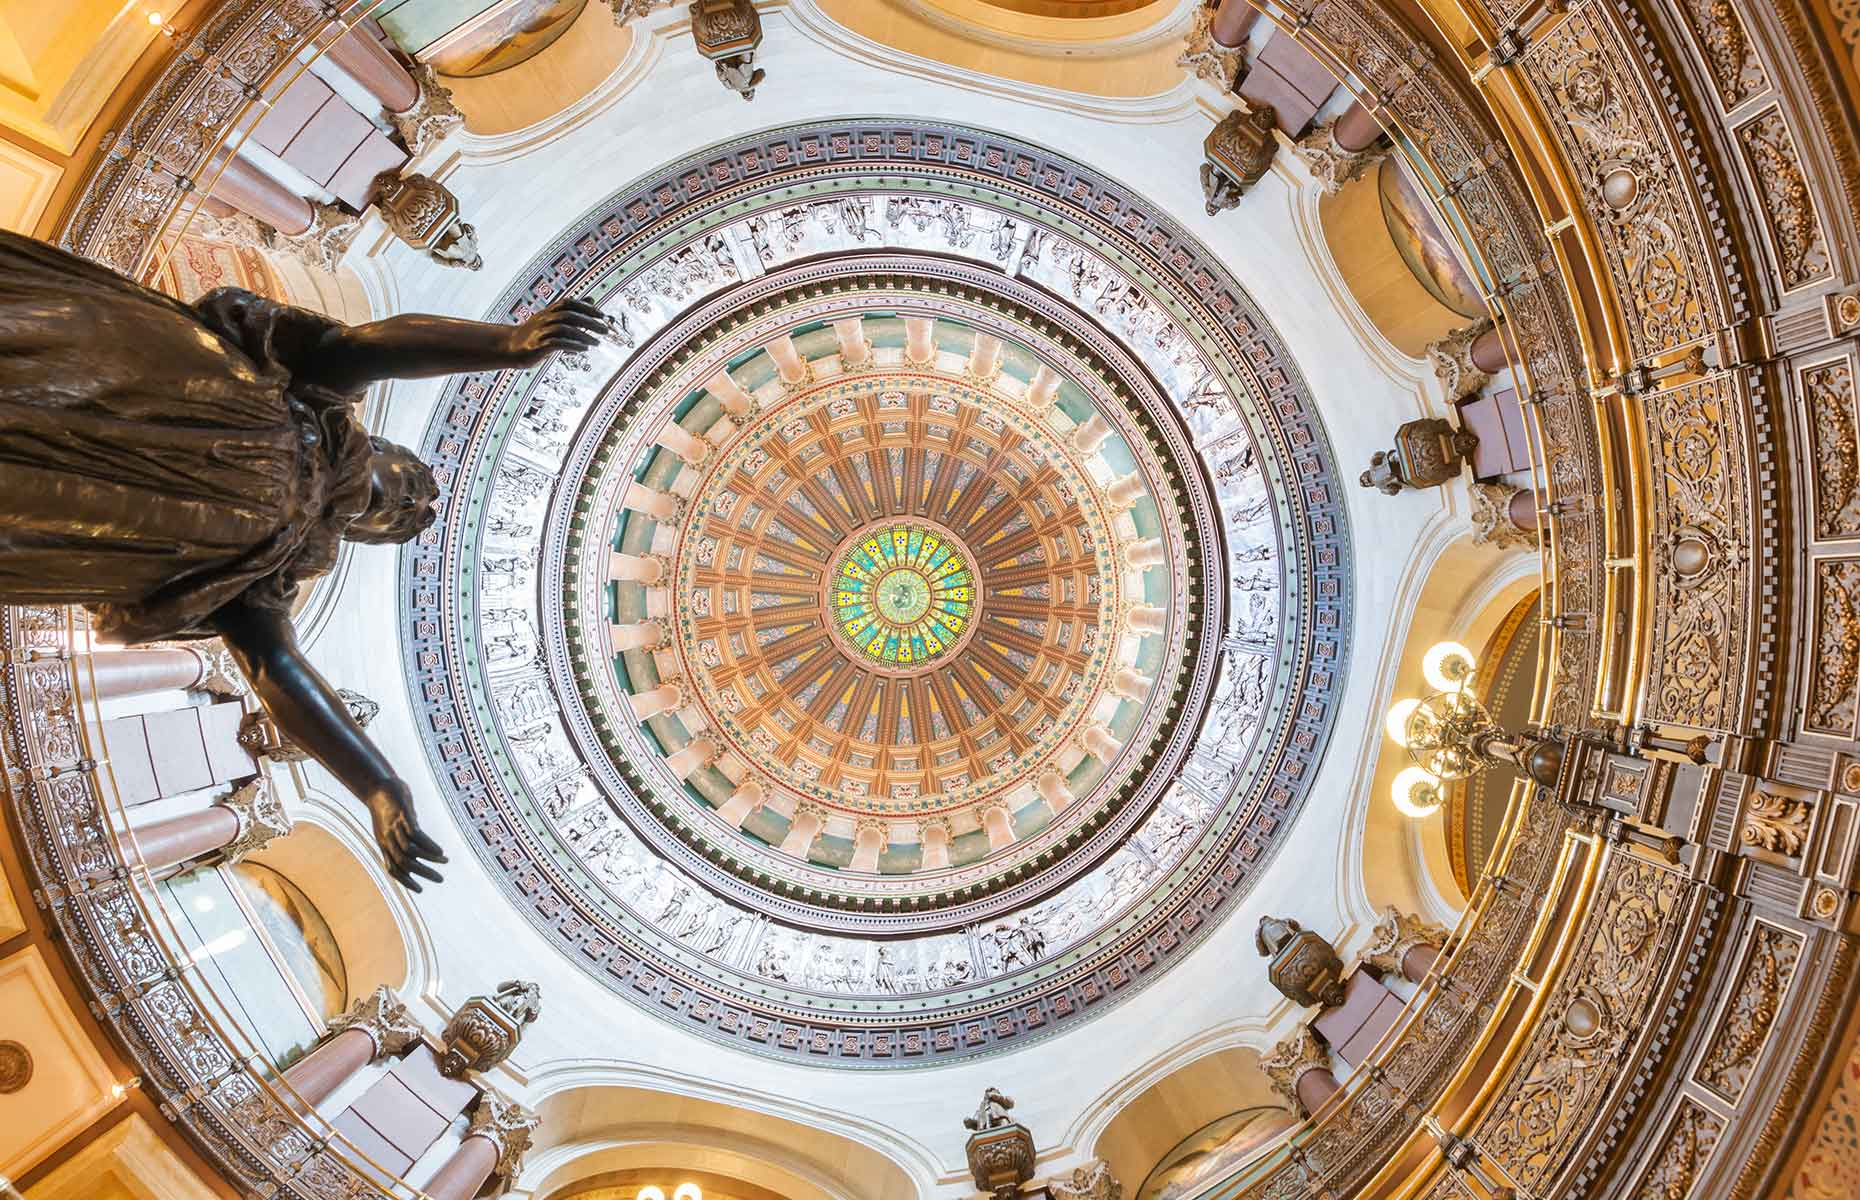 Dome at the State Capitol, Springfield, Illinois